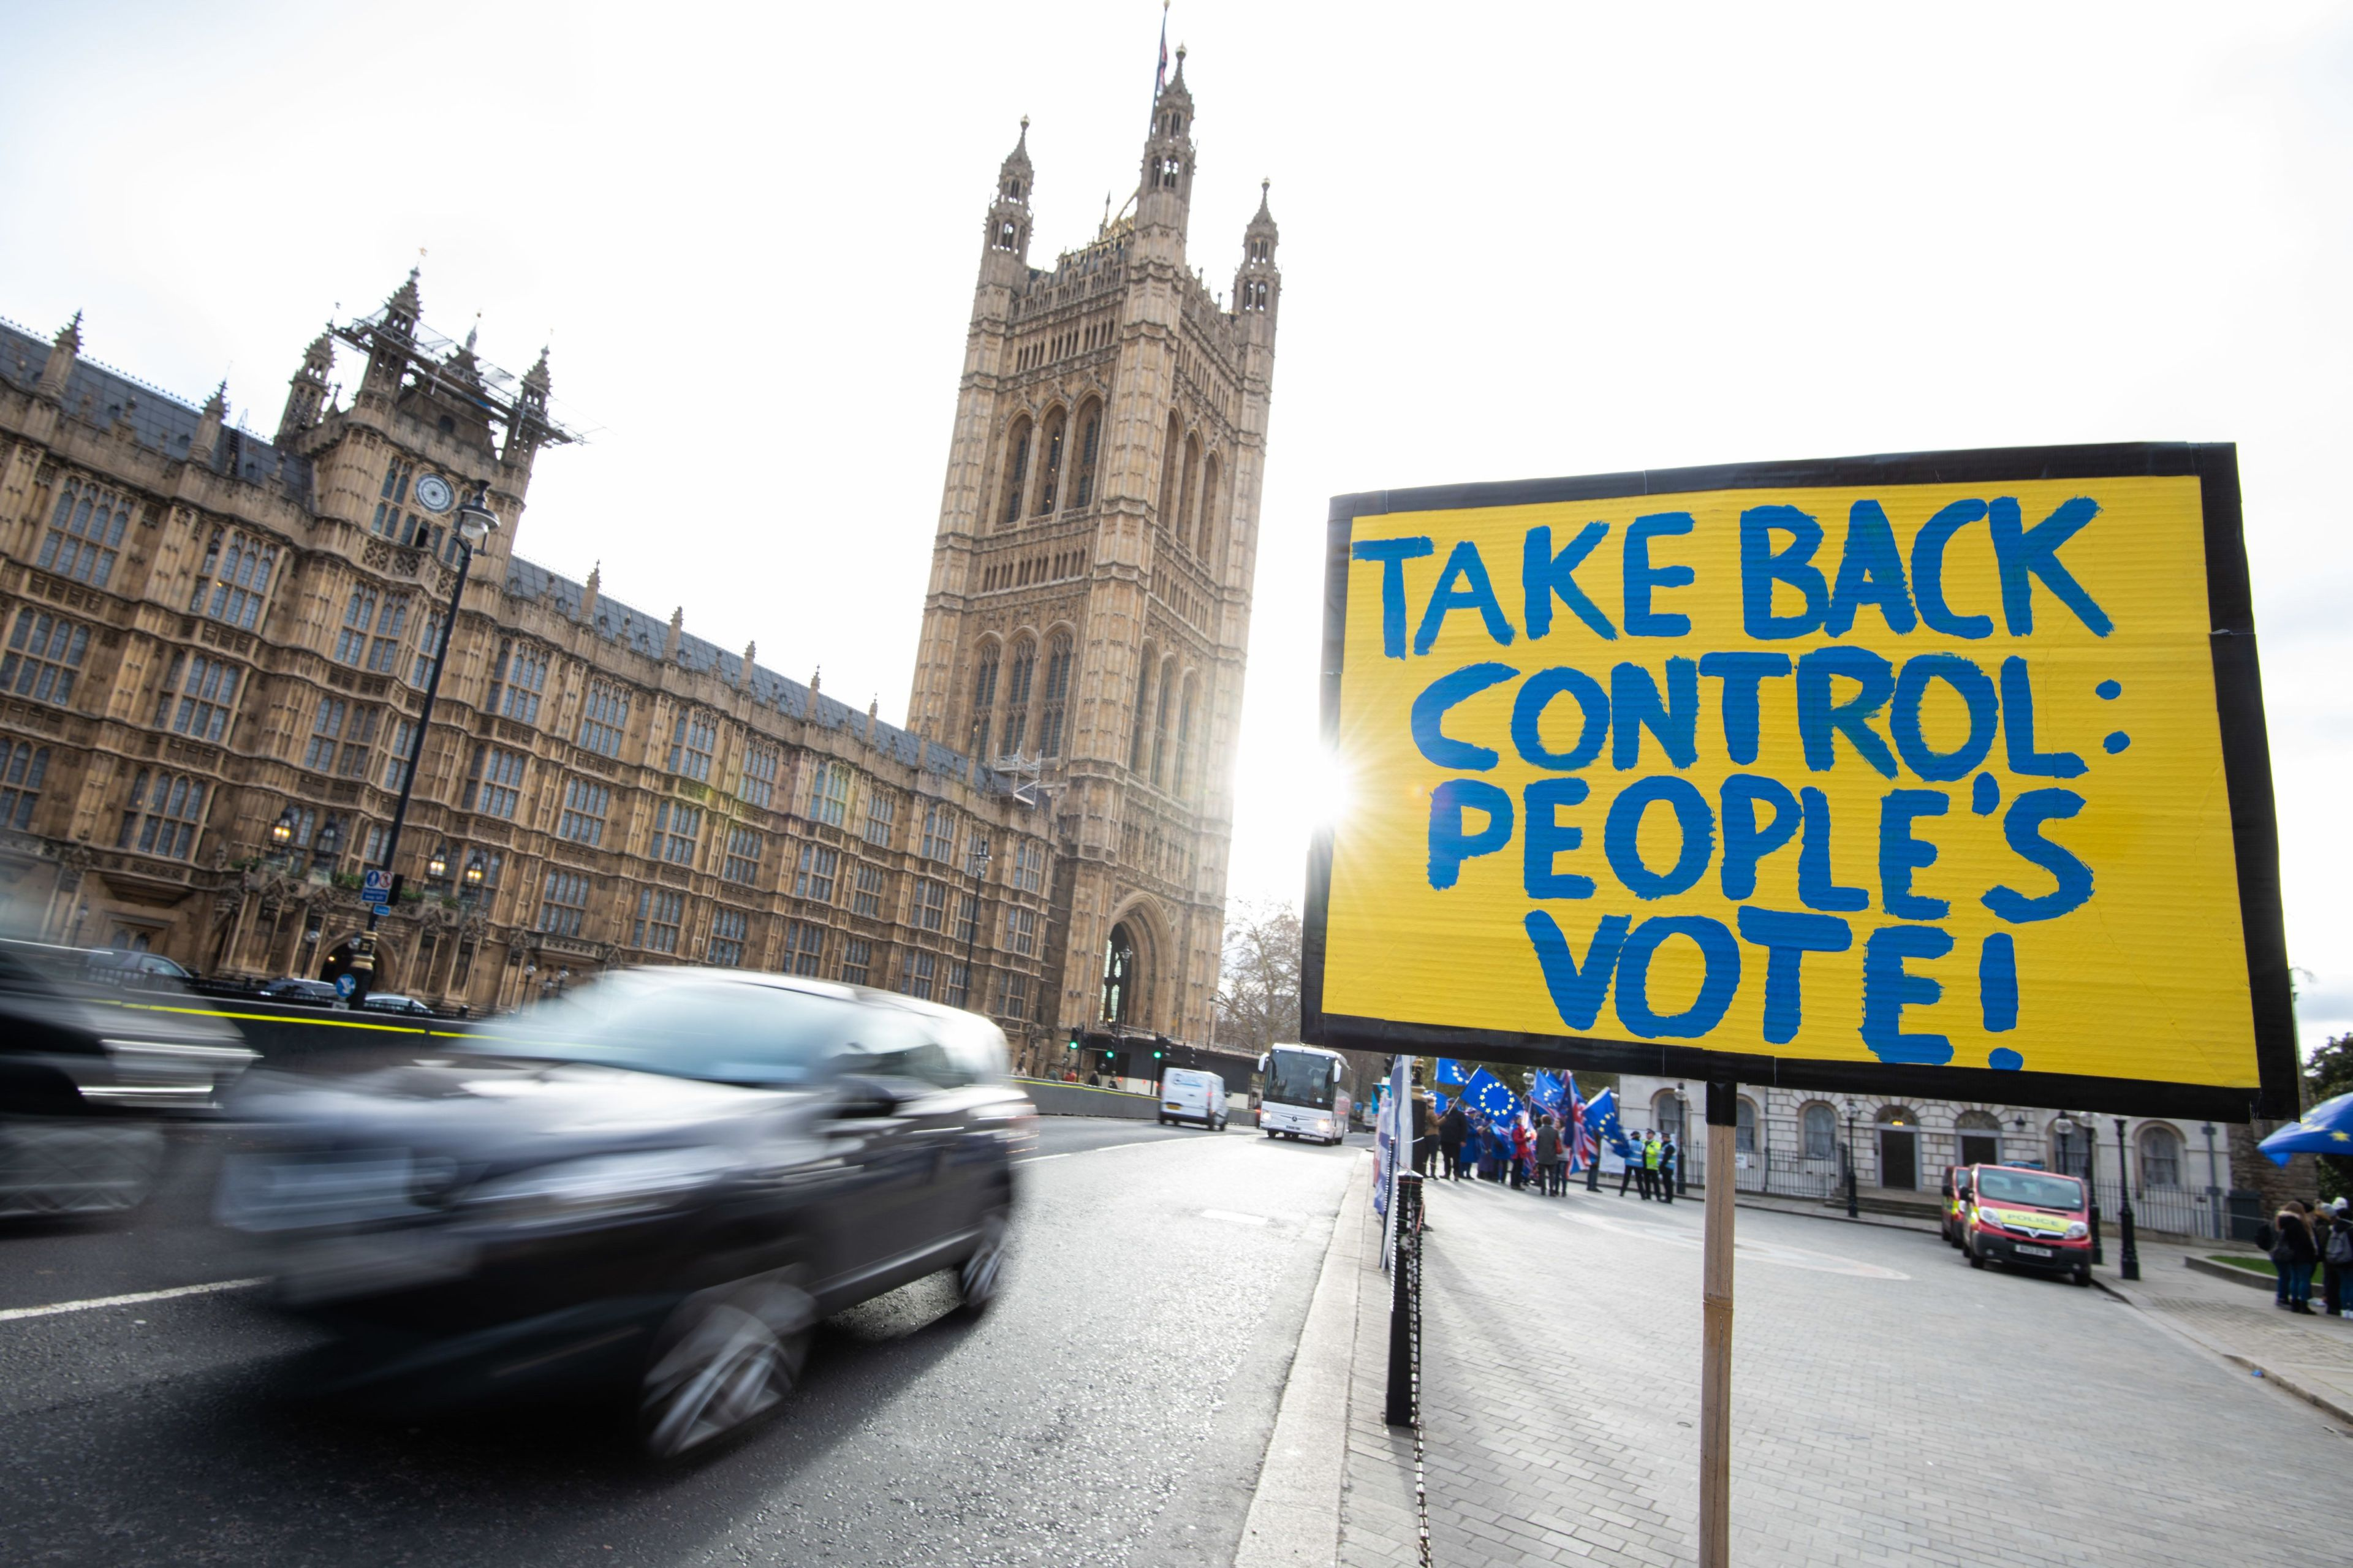 A cross-party group of MPs who back a People's Vote shall meet near Parliament on Wednesday morning.